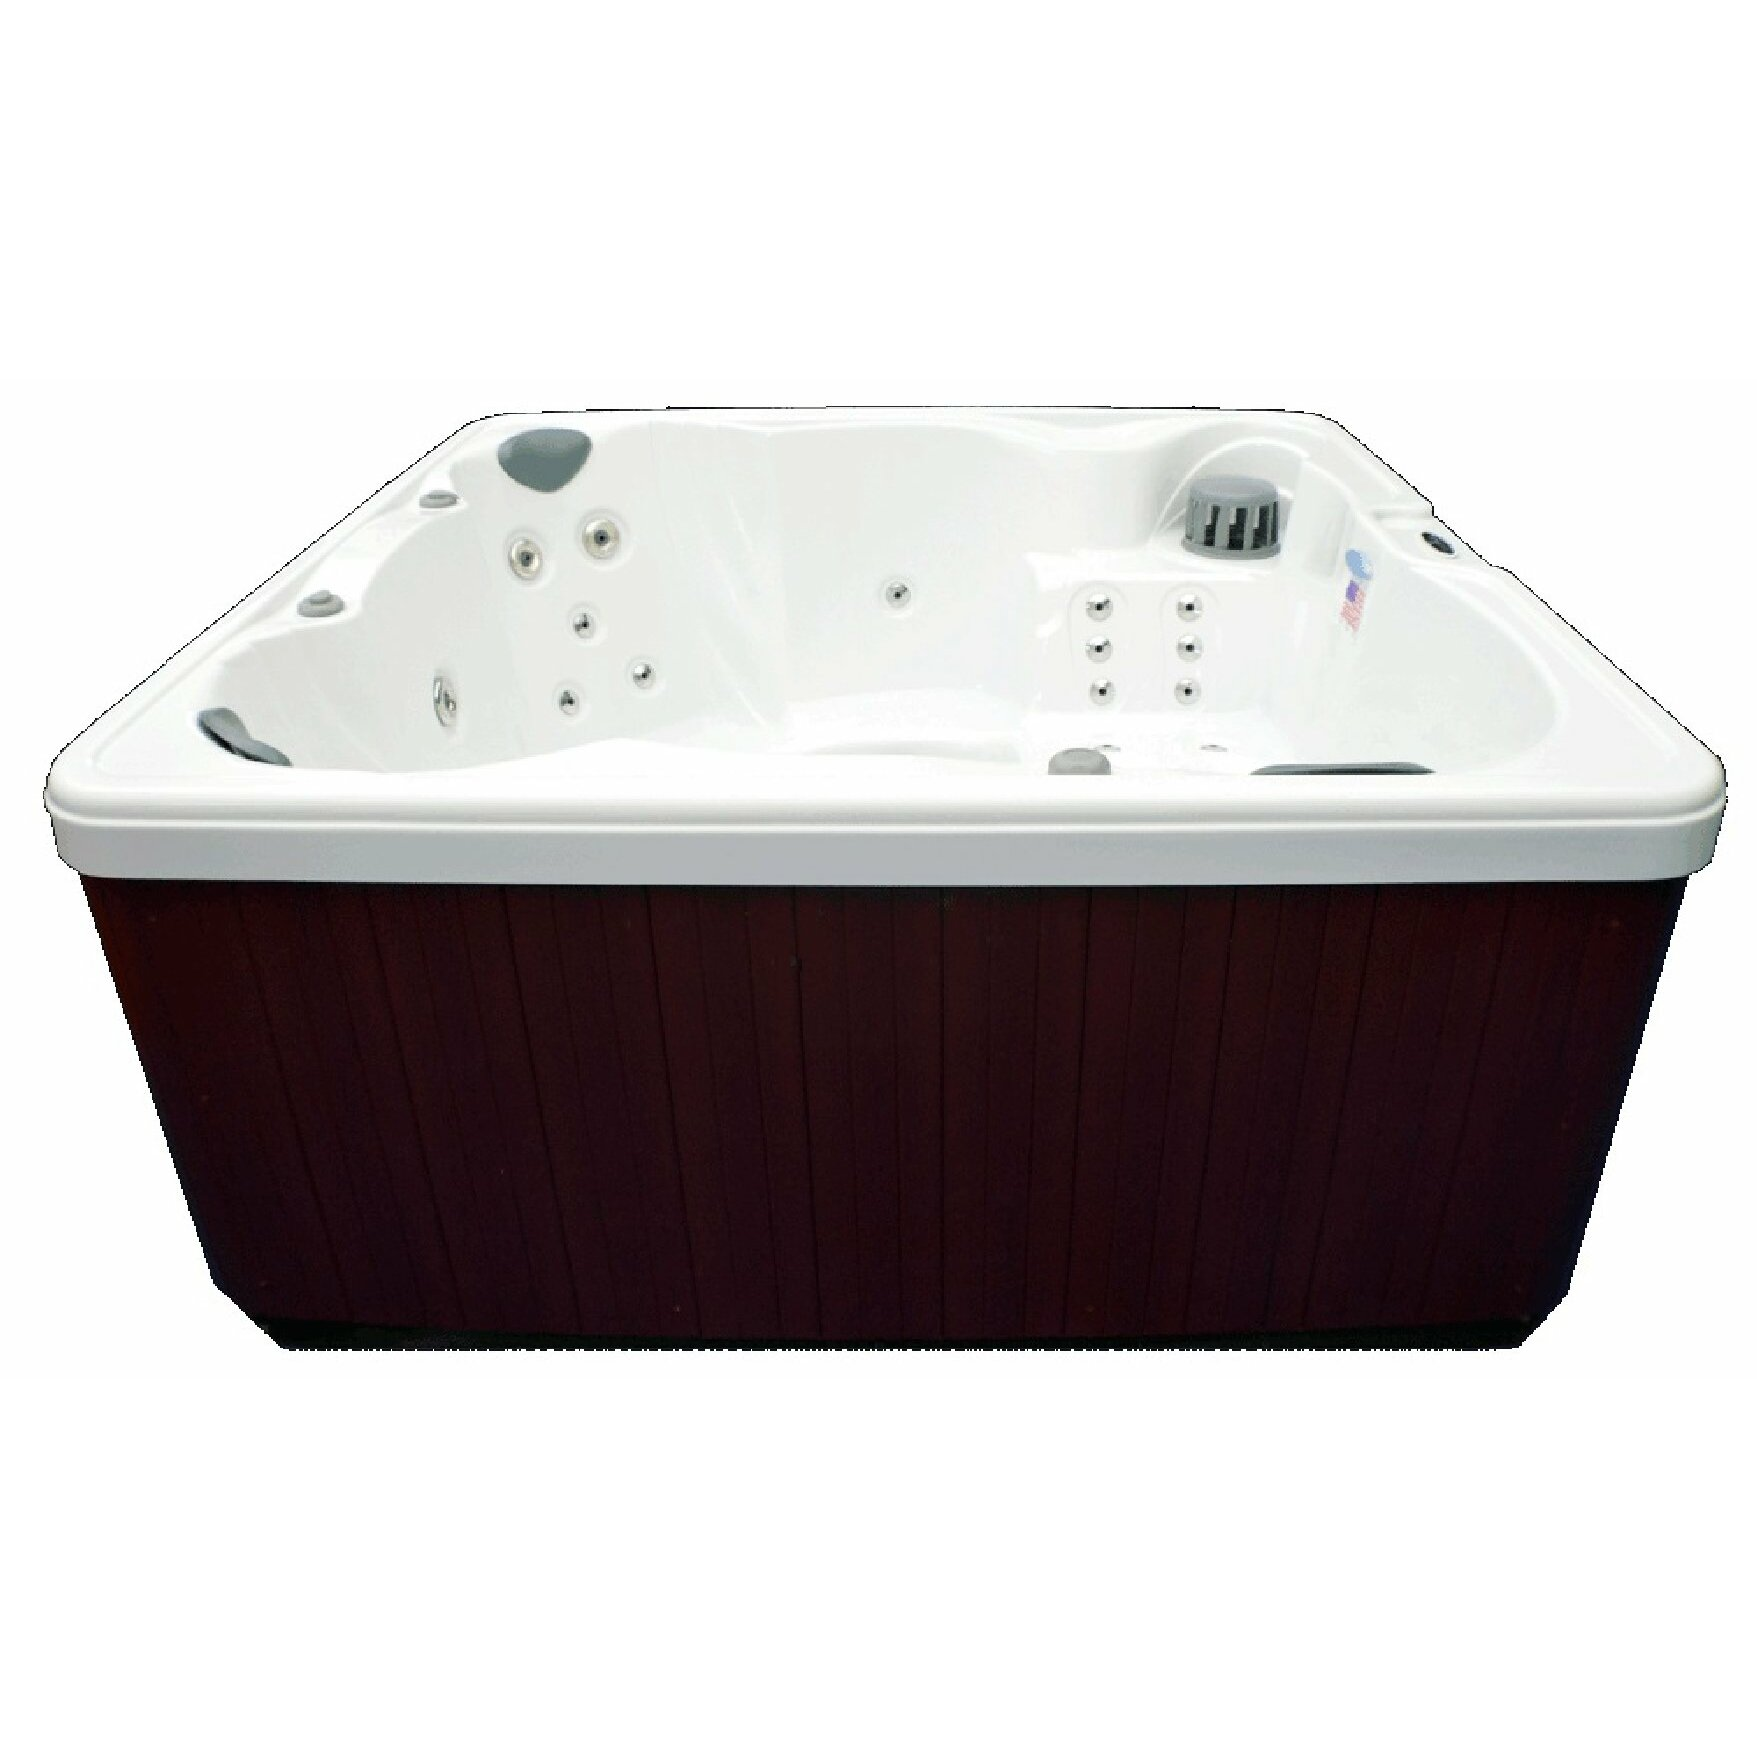 Home And Garden Spas 5 Person 32 Jet Spa With Ozone System